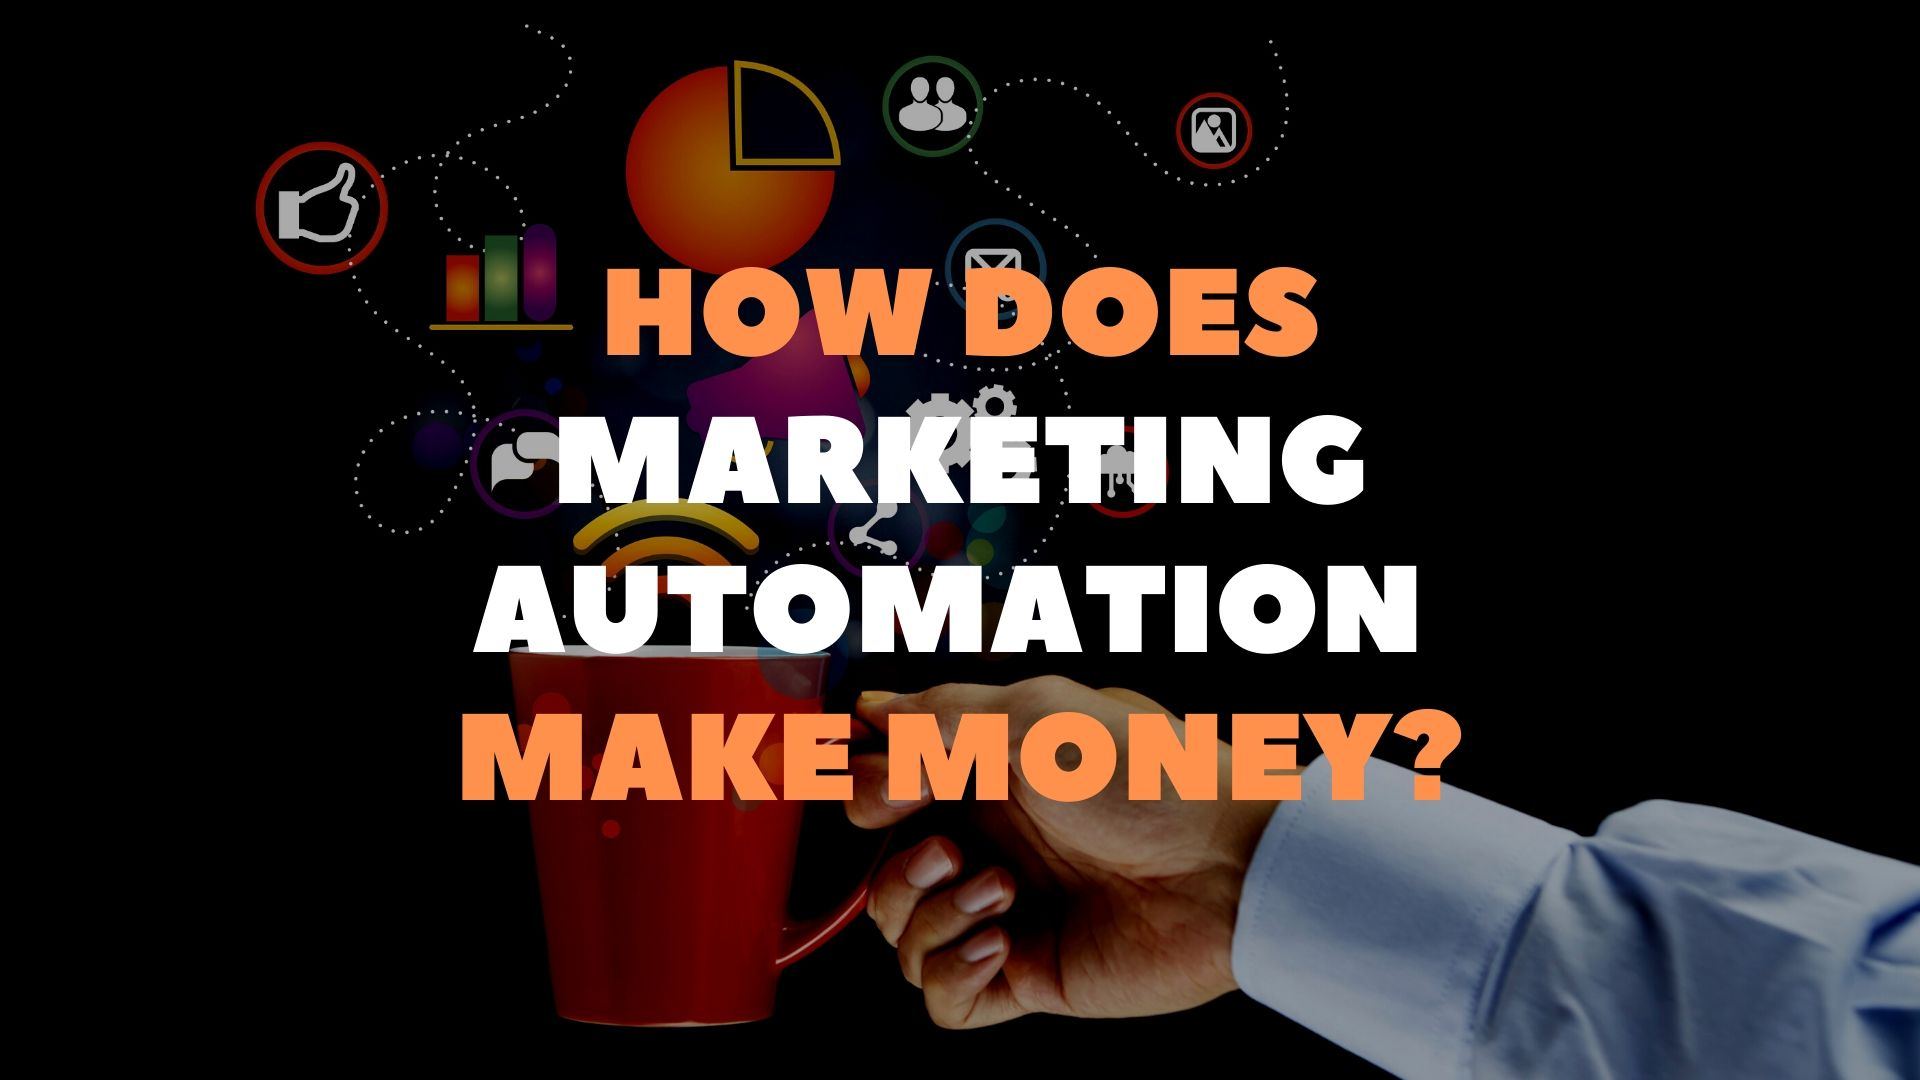 How does marketing automation make money